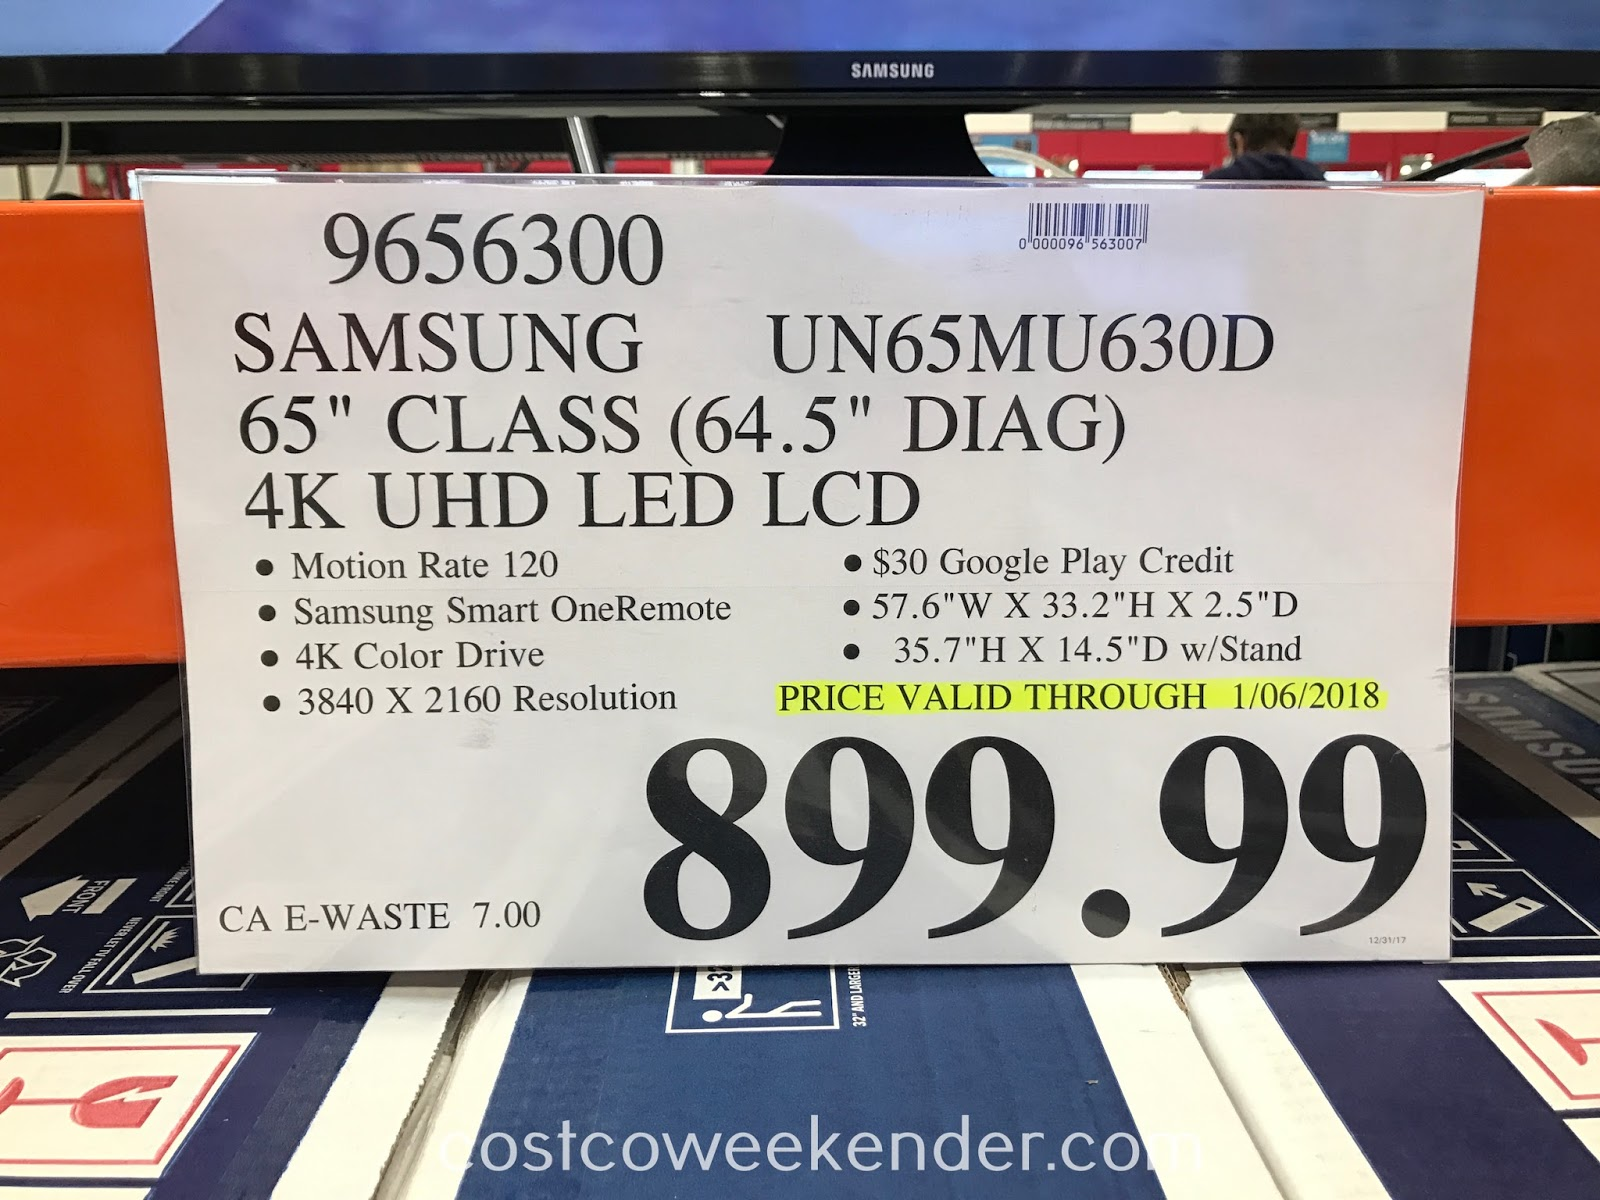 Costco 9656300 - Deal for the Samsung UN65MU630D 65in 4K UHD LED LCD TV at Costco